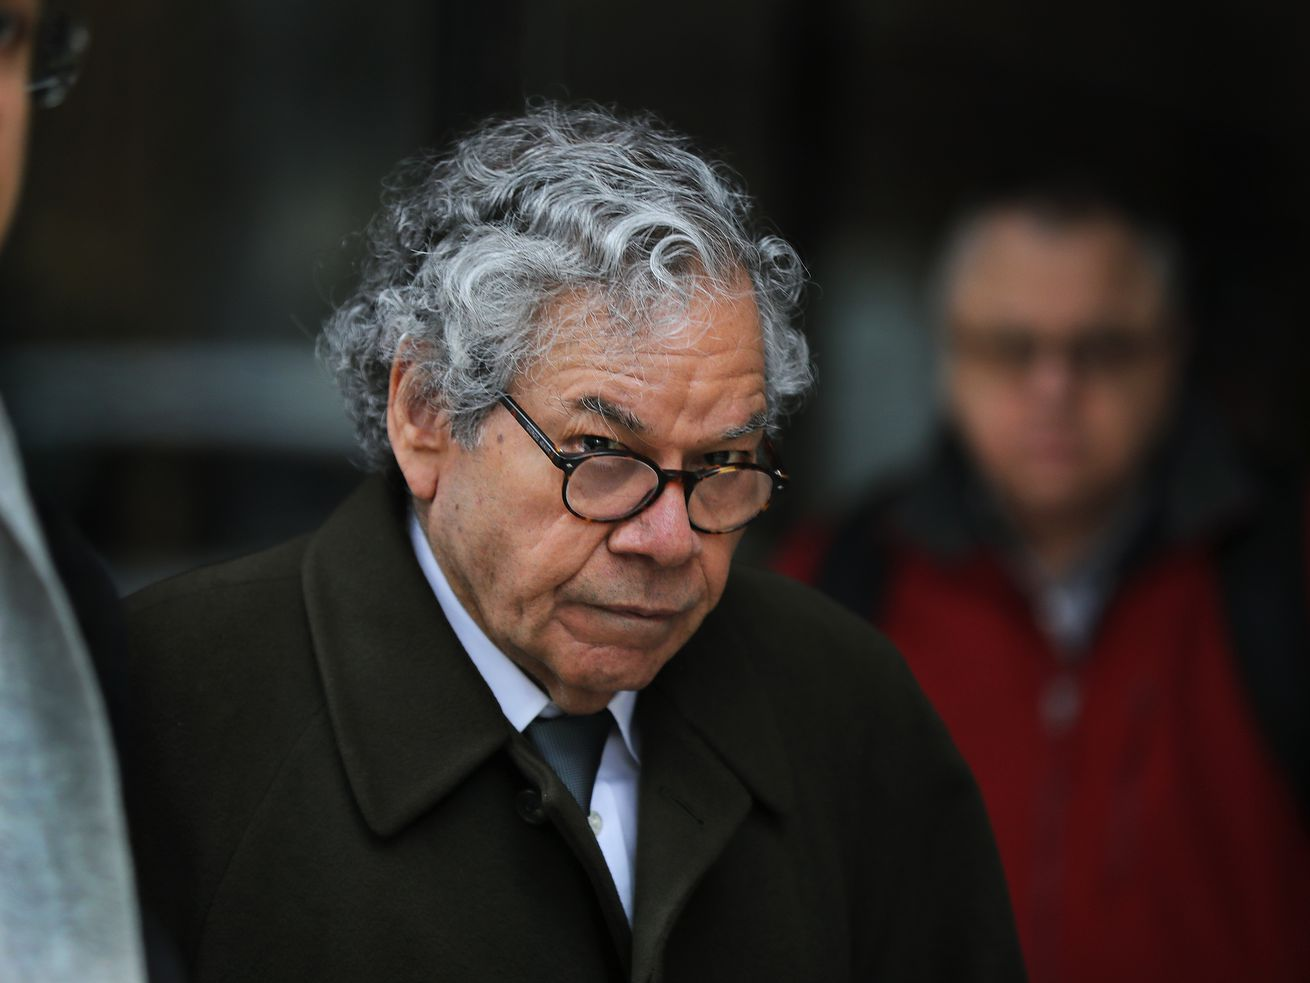 Insys Therapeutics founder John Kapoor leaves federal court in Boston on March 13, 2019.